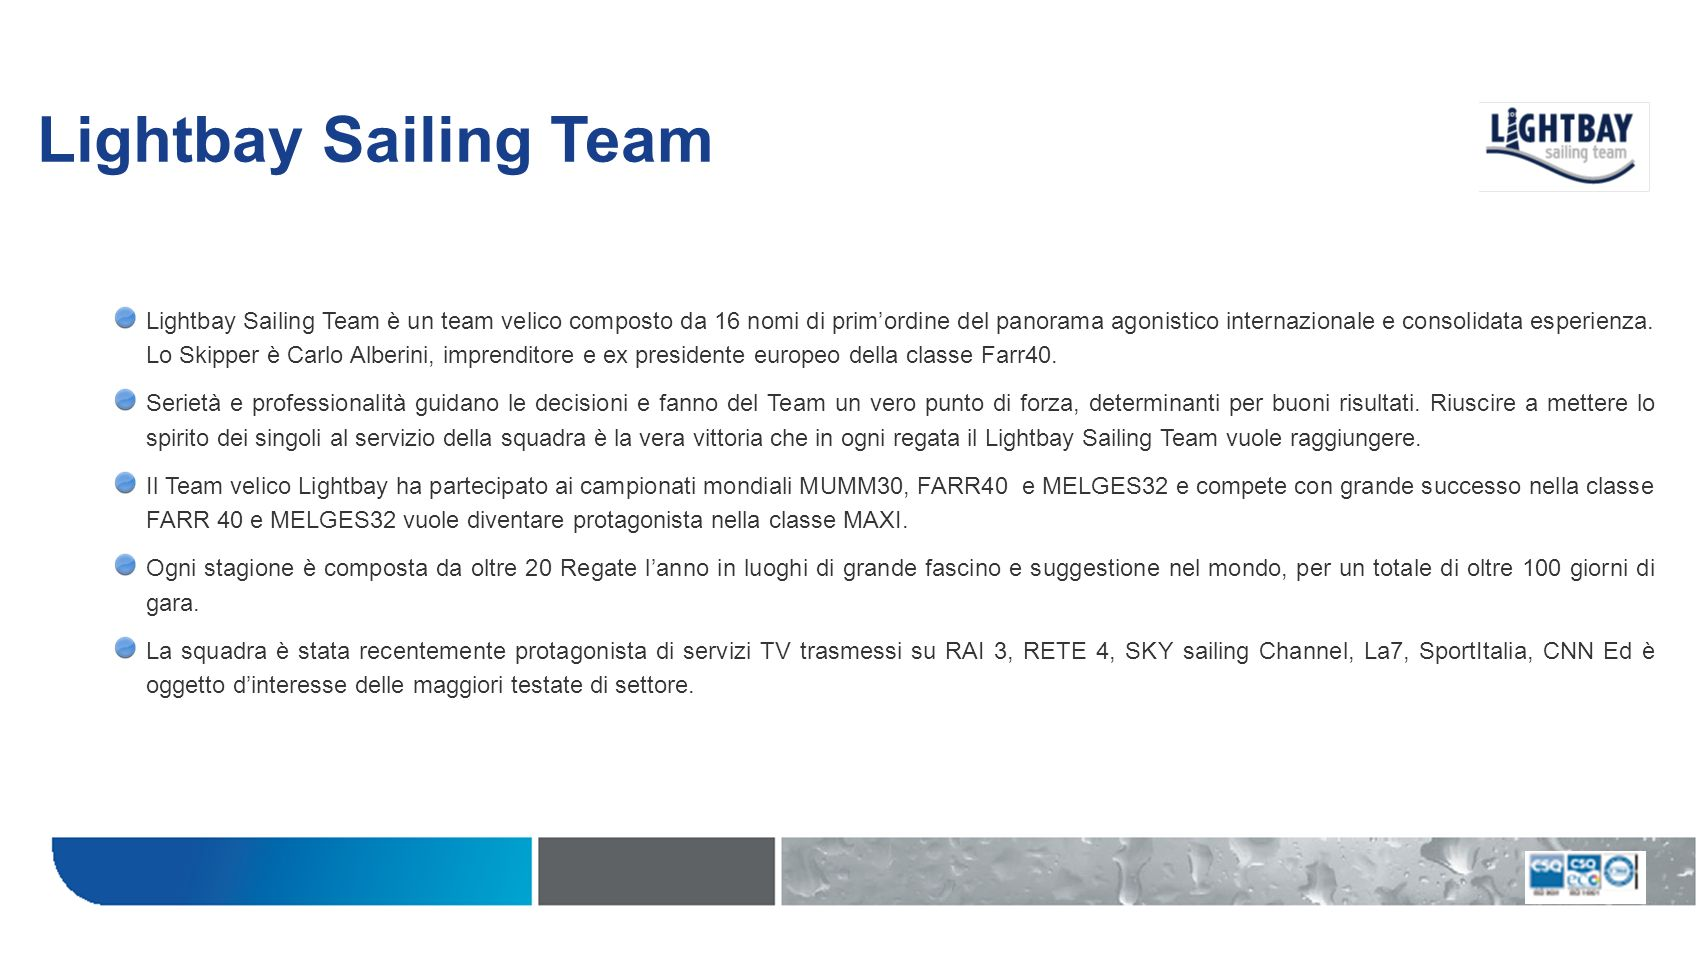 Lightbay Sailing Team